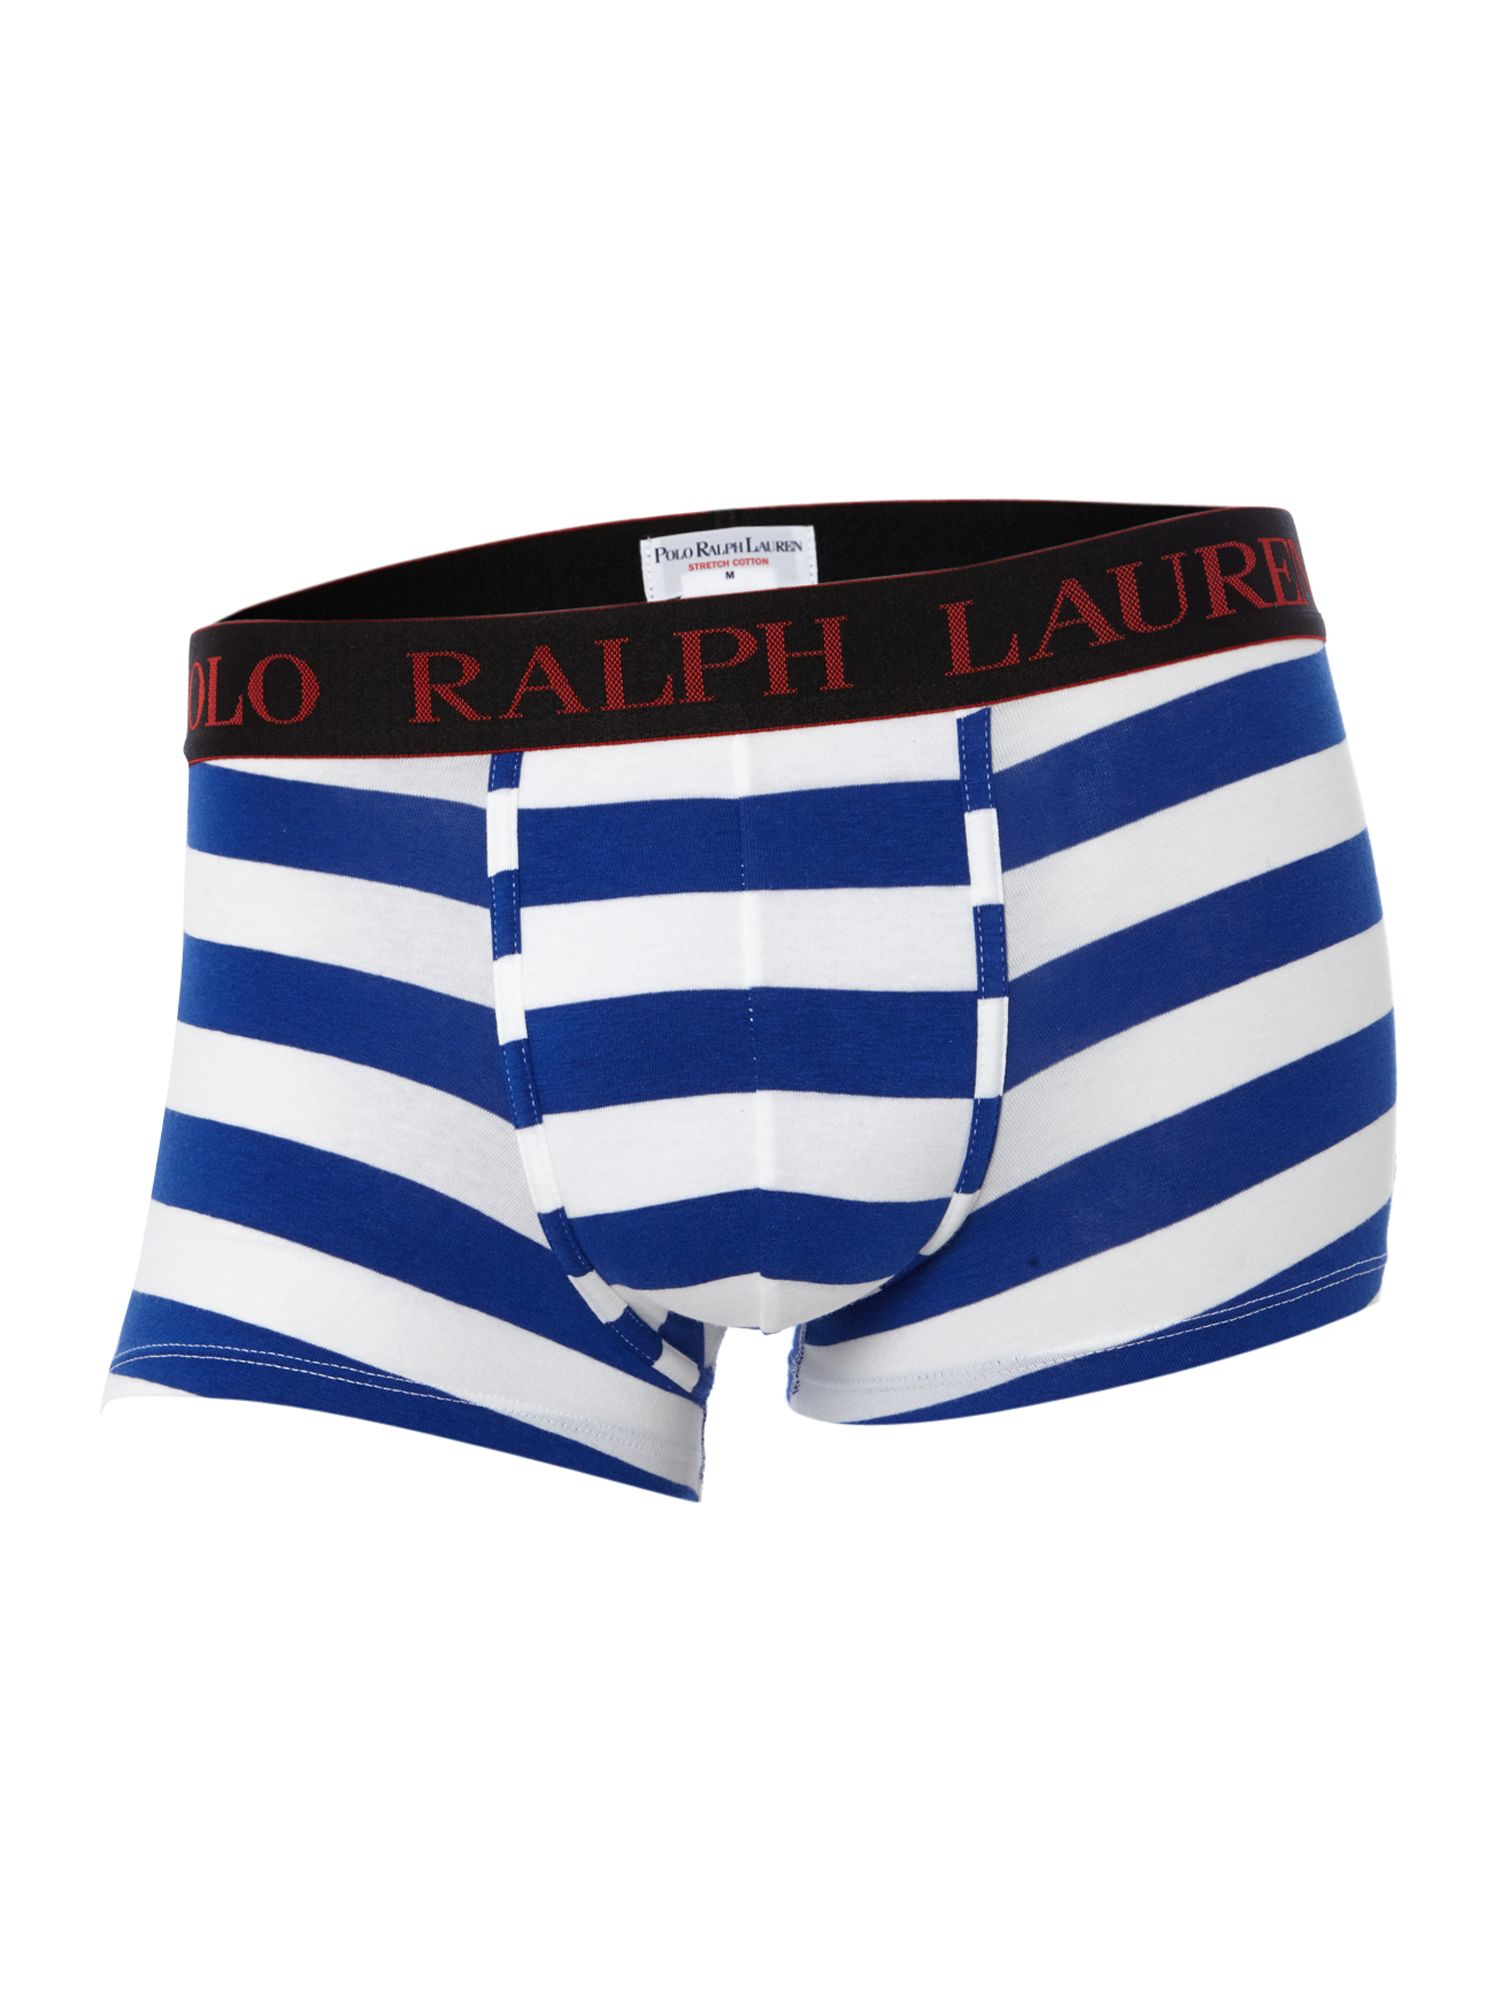 Rugby stripe underwear trunk